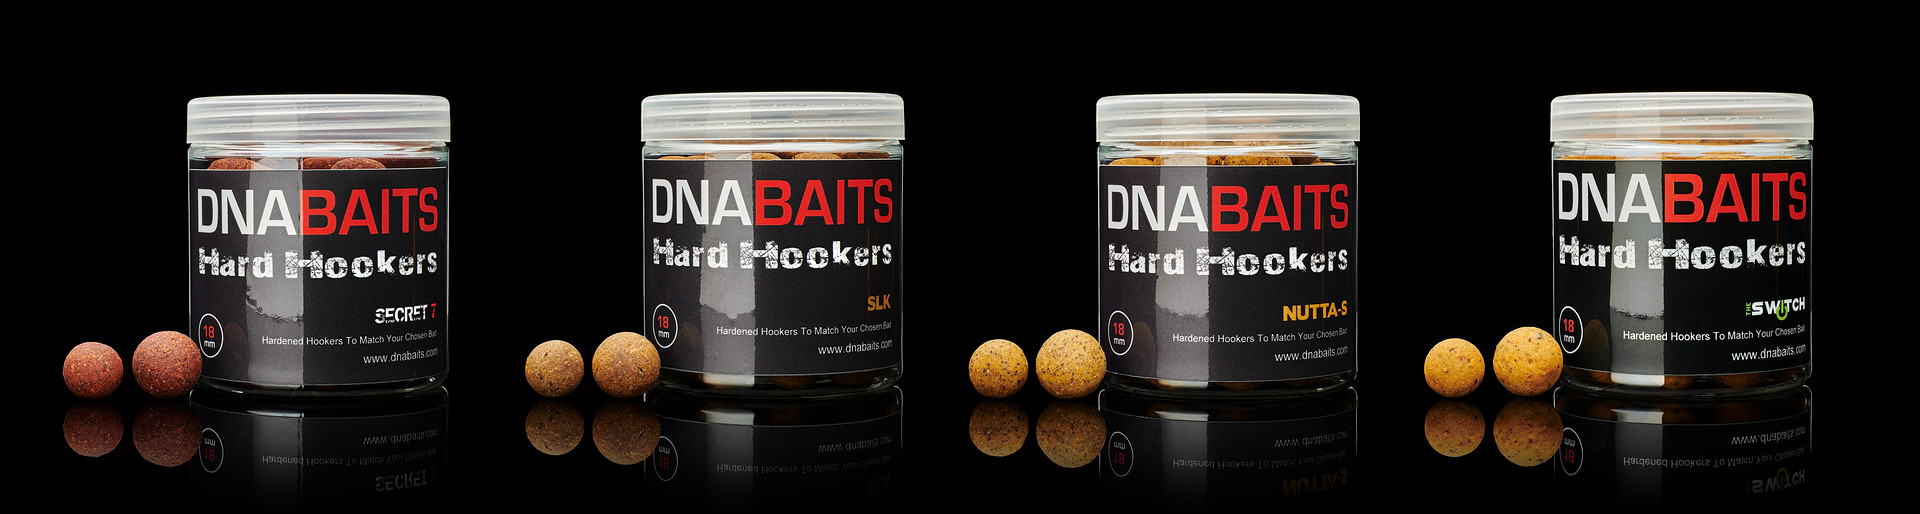 DNA Baits, Hard Hookers